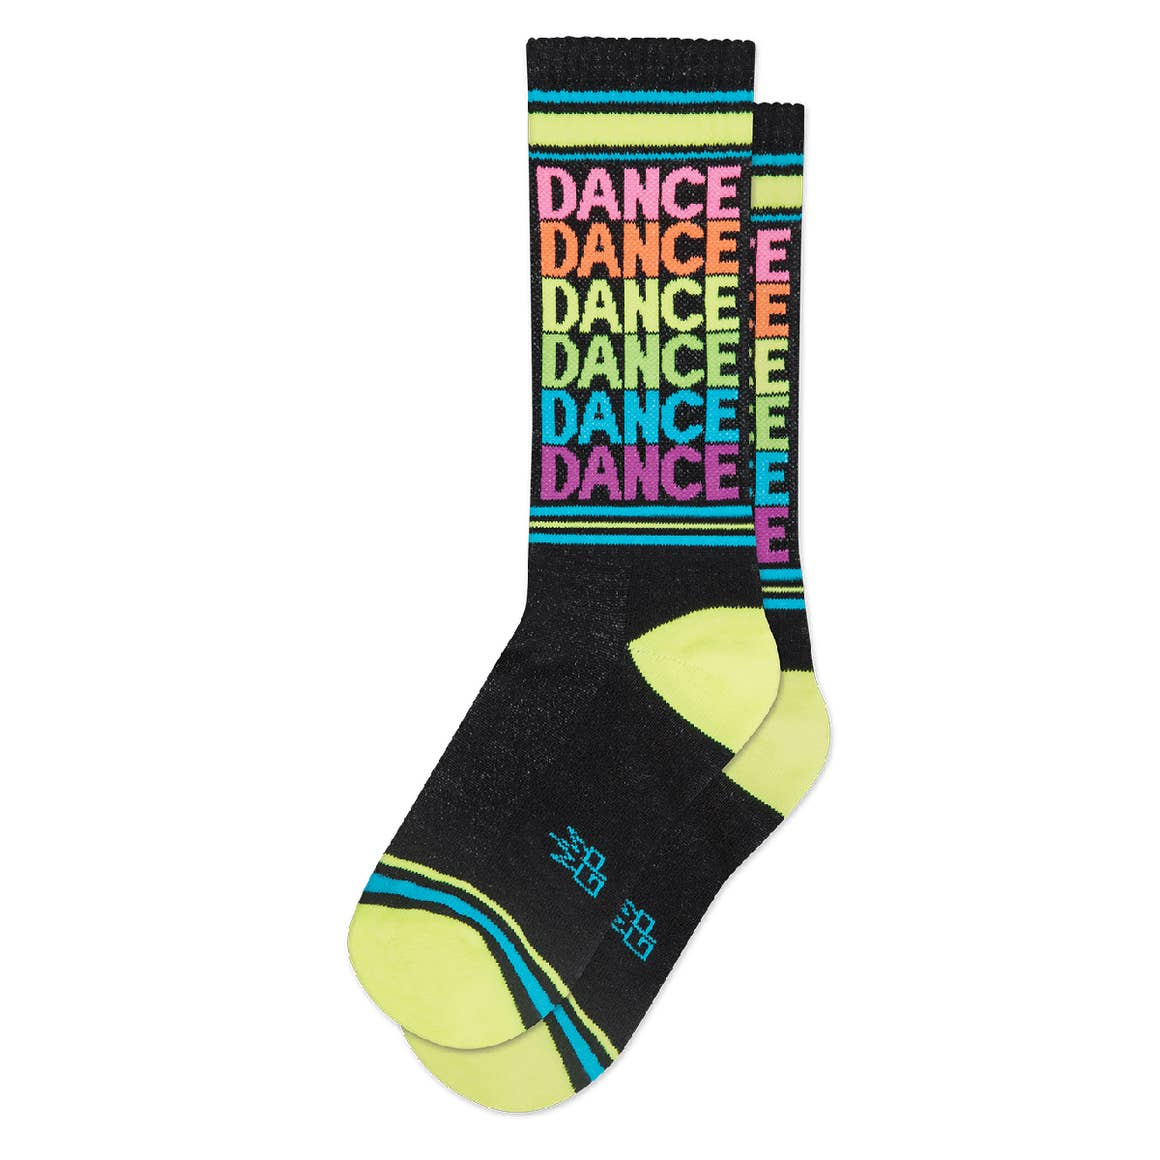 Gumball Poodle Gym Socks - Assorted Fun Styles